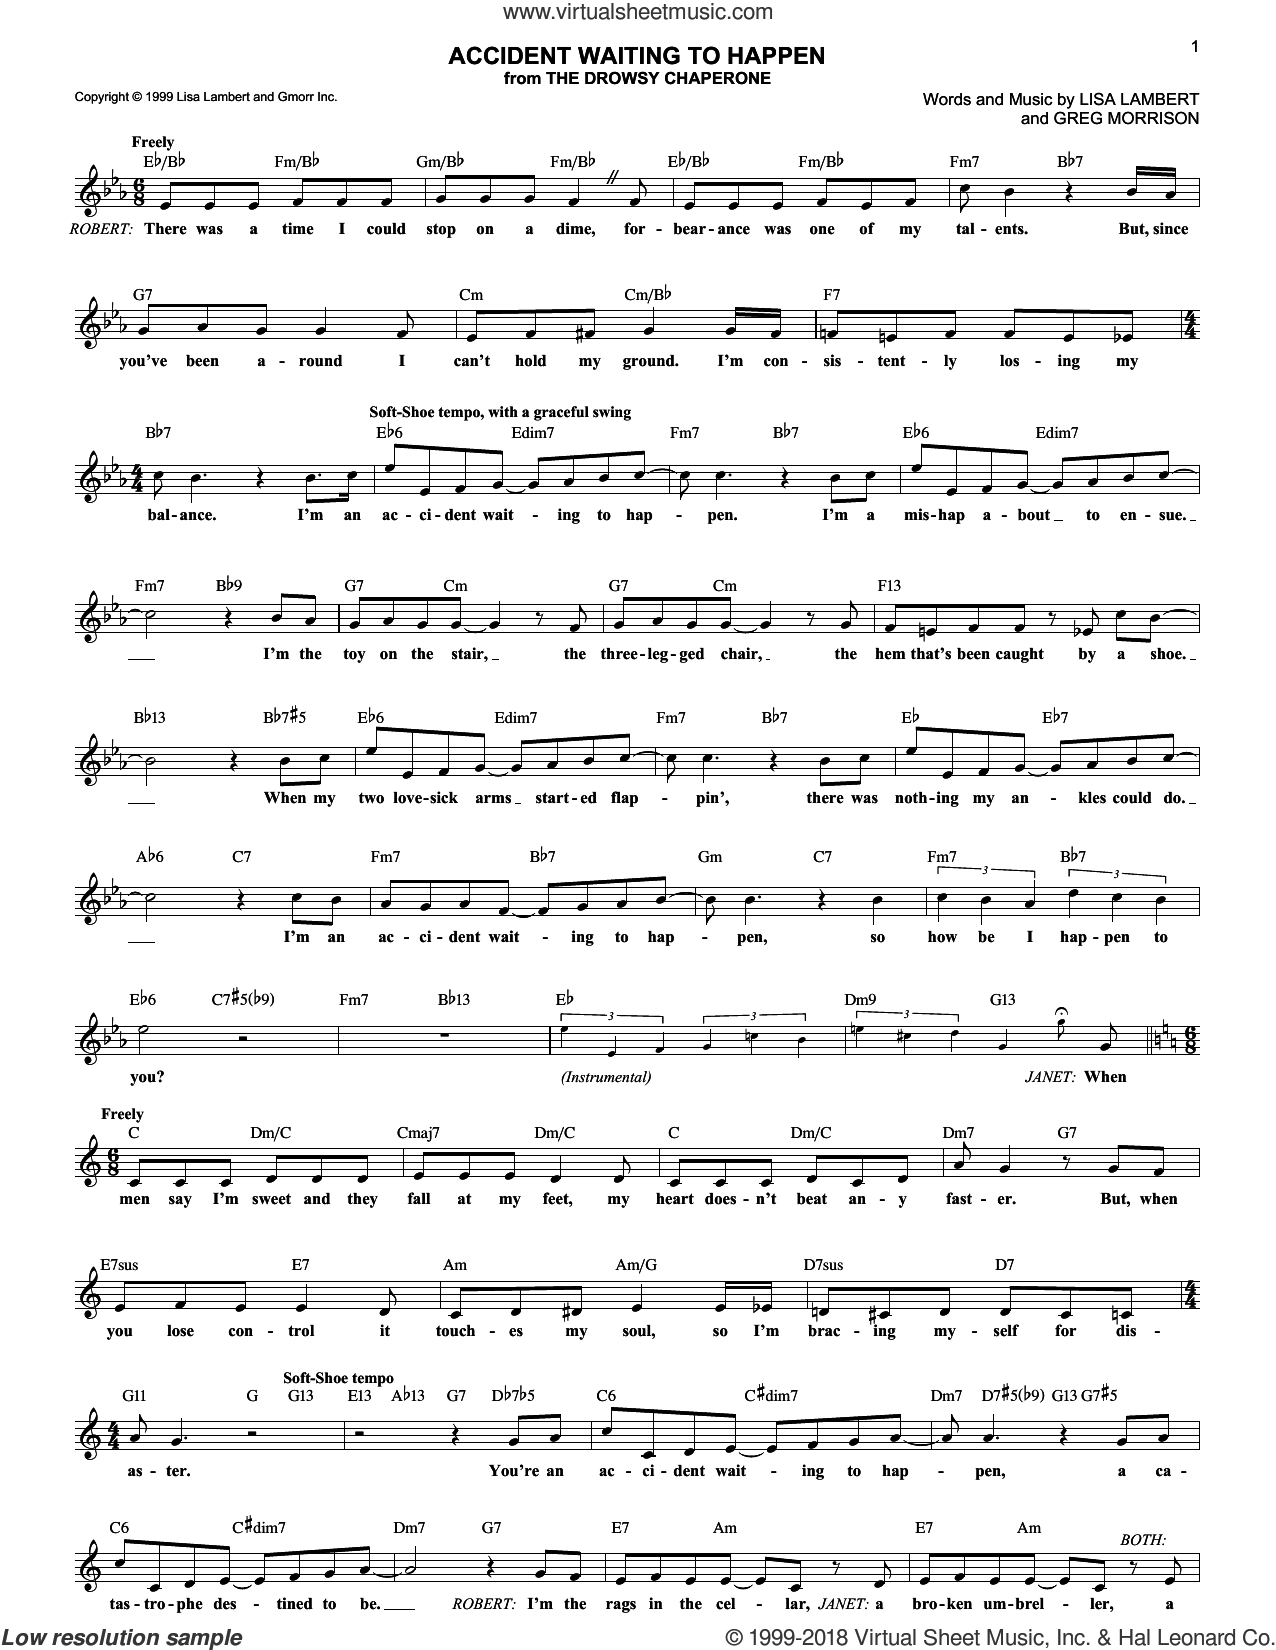 Accident Waiting To Happen sheet music for voice and other instruments (fake book) by Greg Morrison and Lisa Lambert